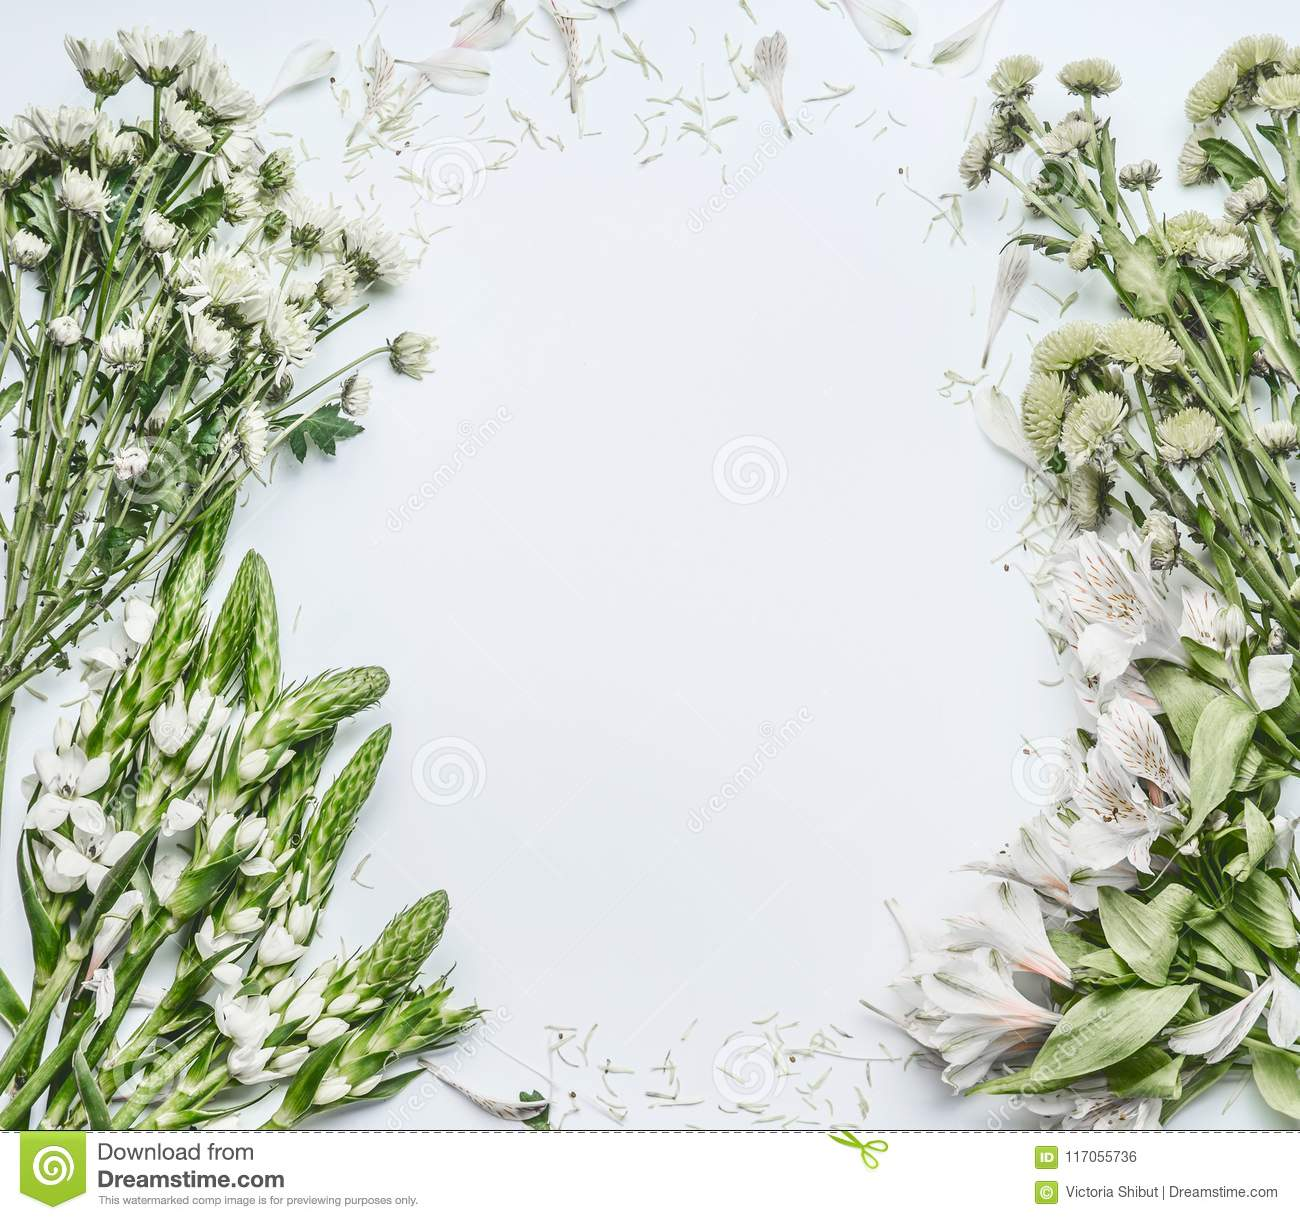 Beautiful floral frame layout with green flowers for bouquet making on white background